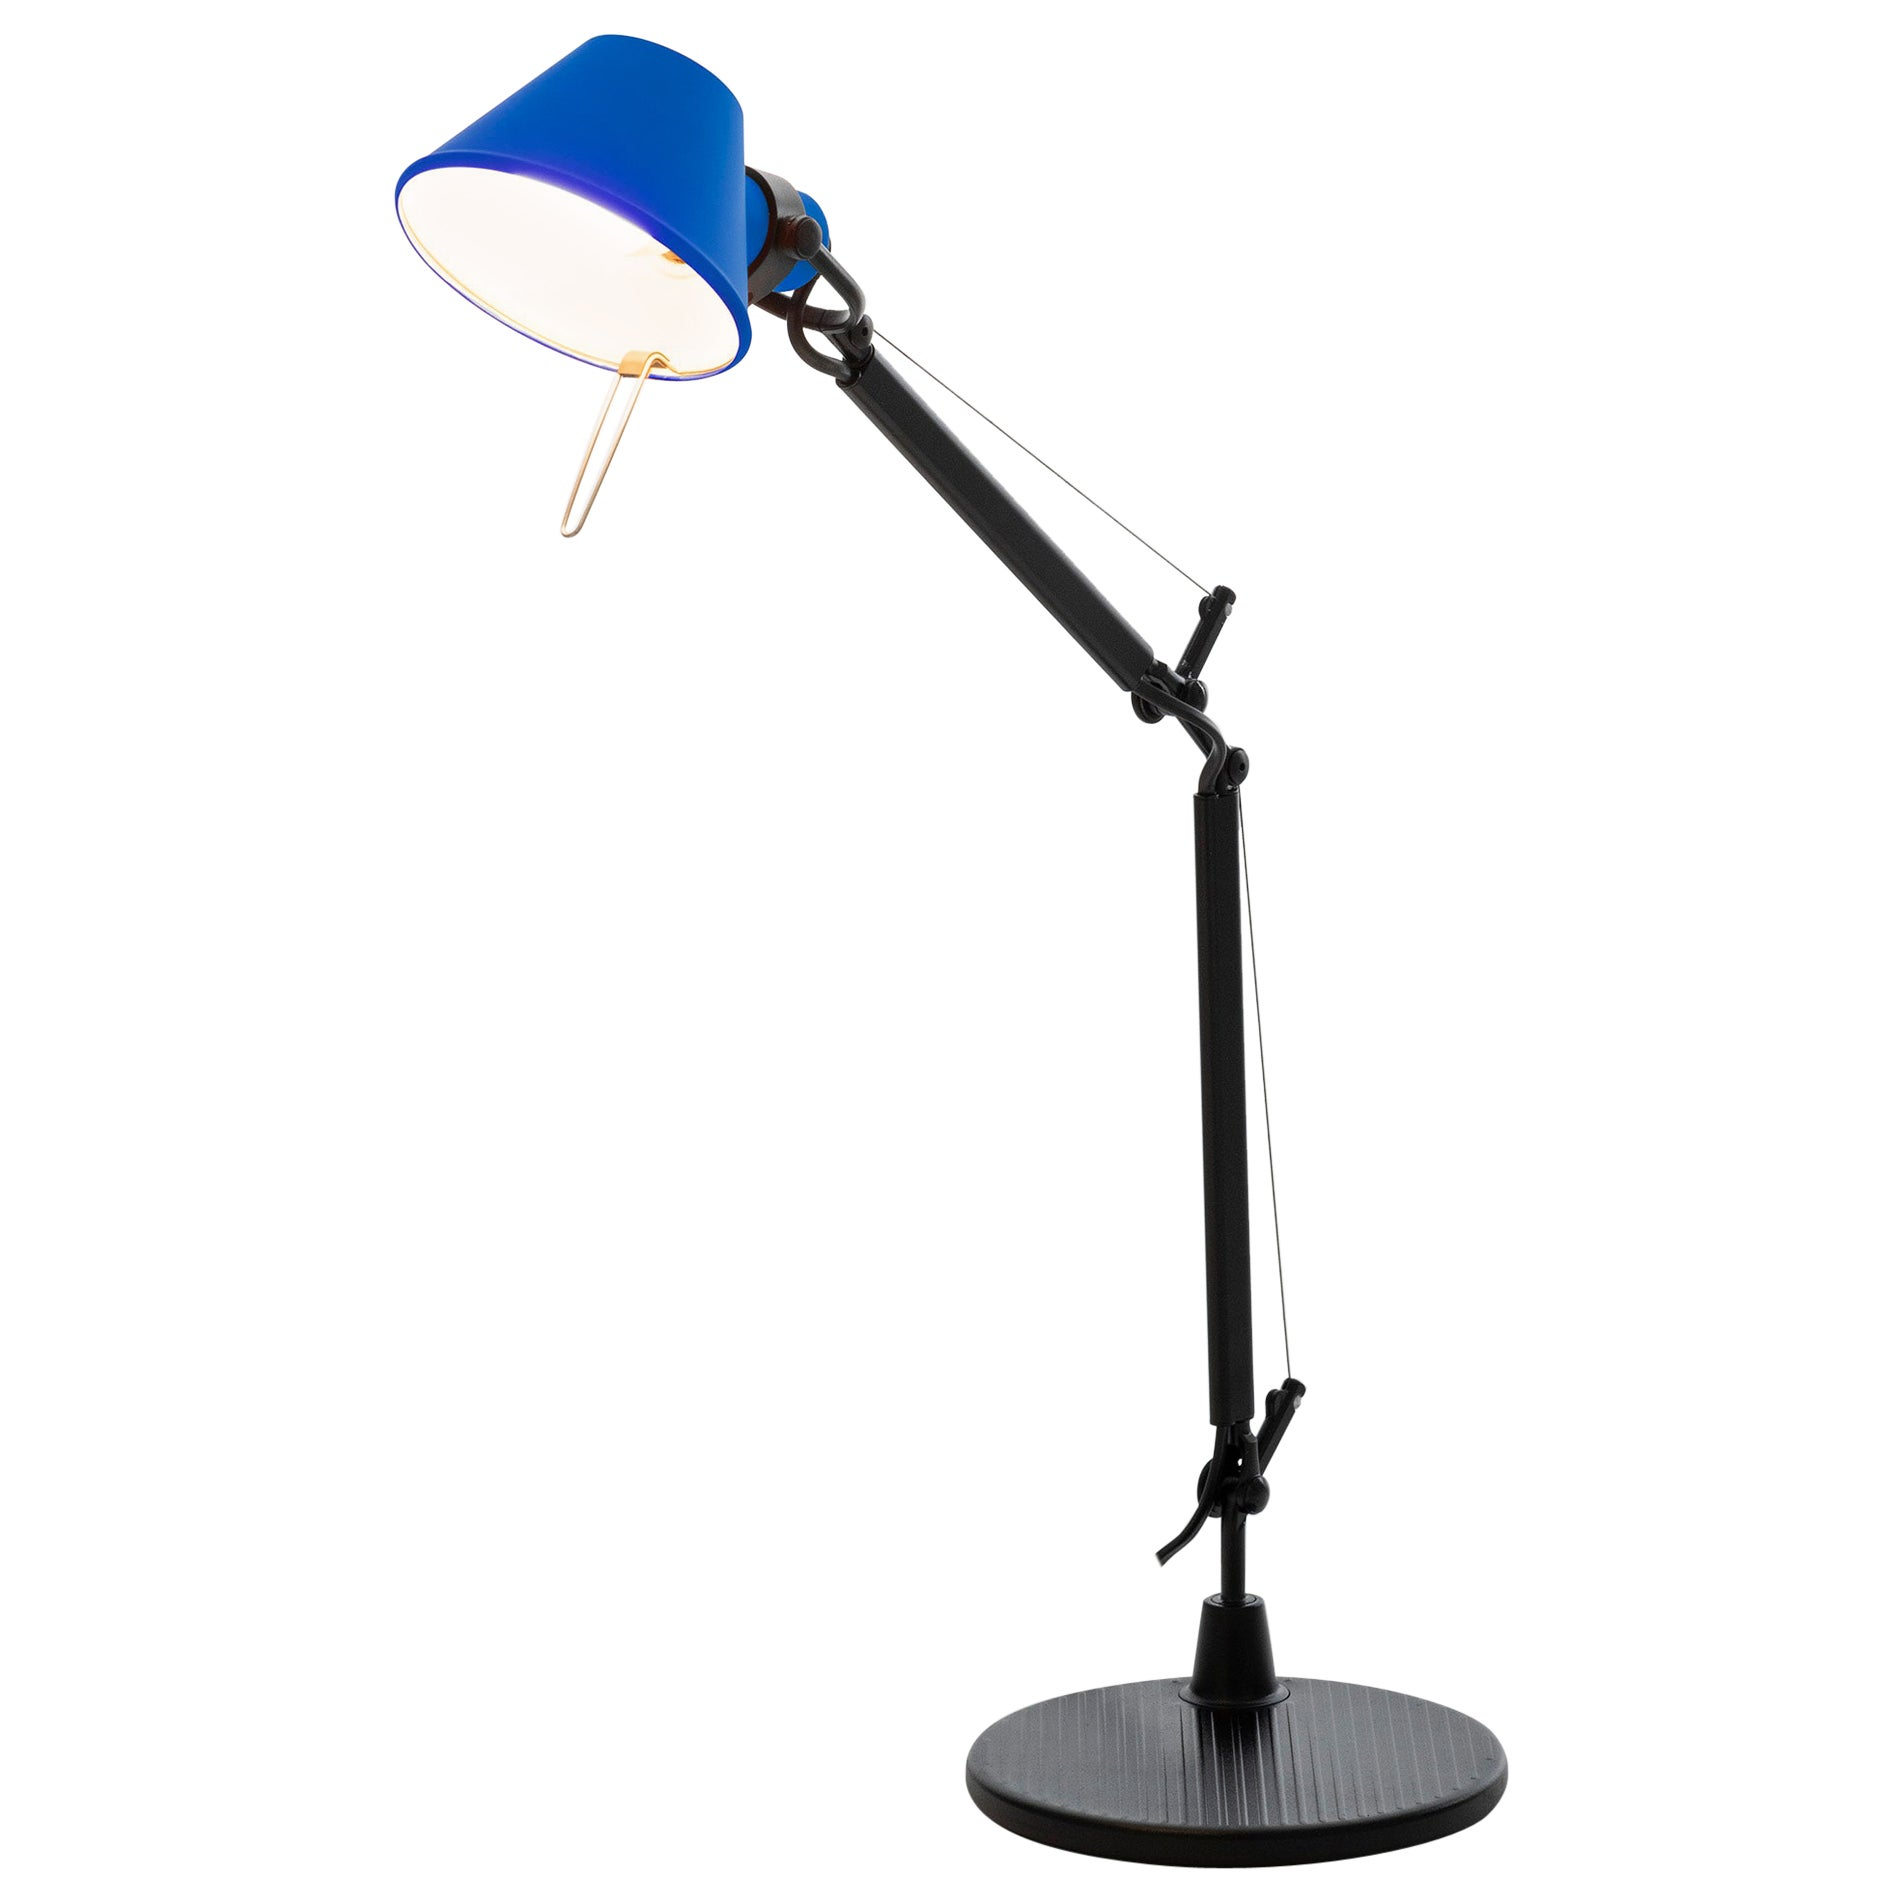 Tolomeo Micro Table Lamp in Black & Blue by Michele de Lucchi & Giancarlo Fassin